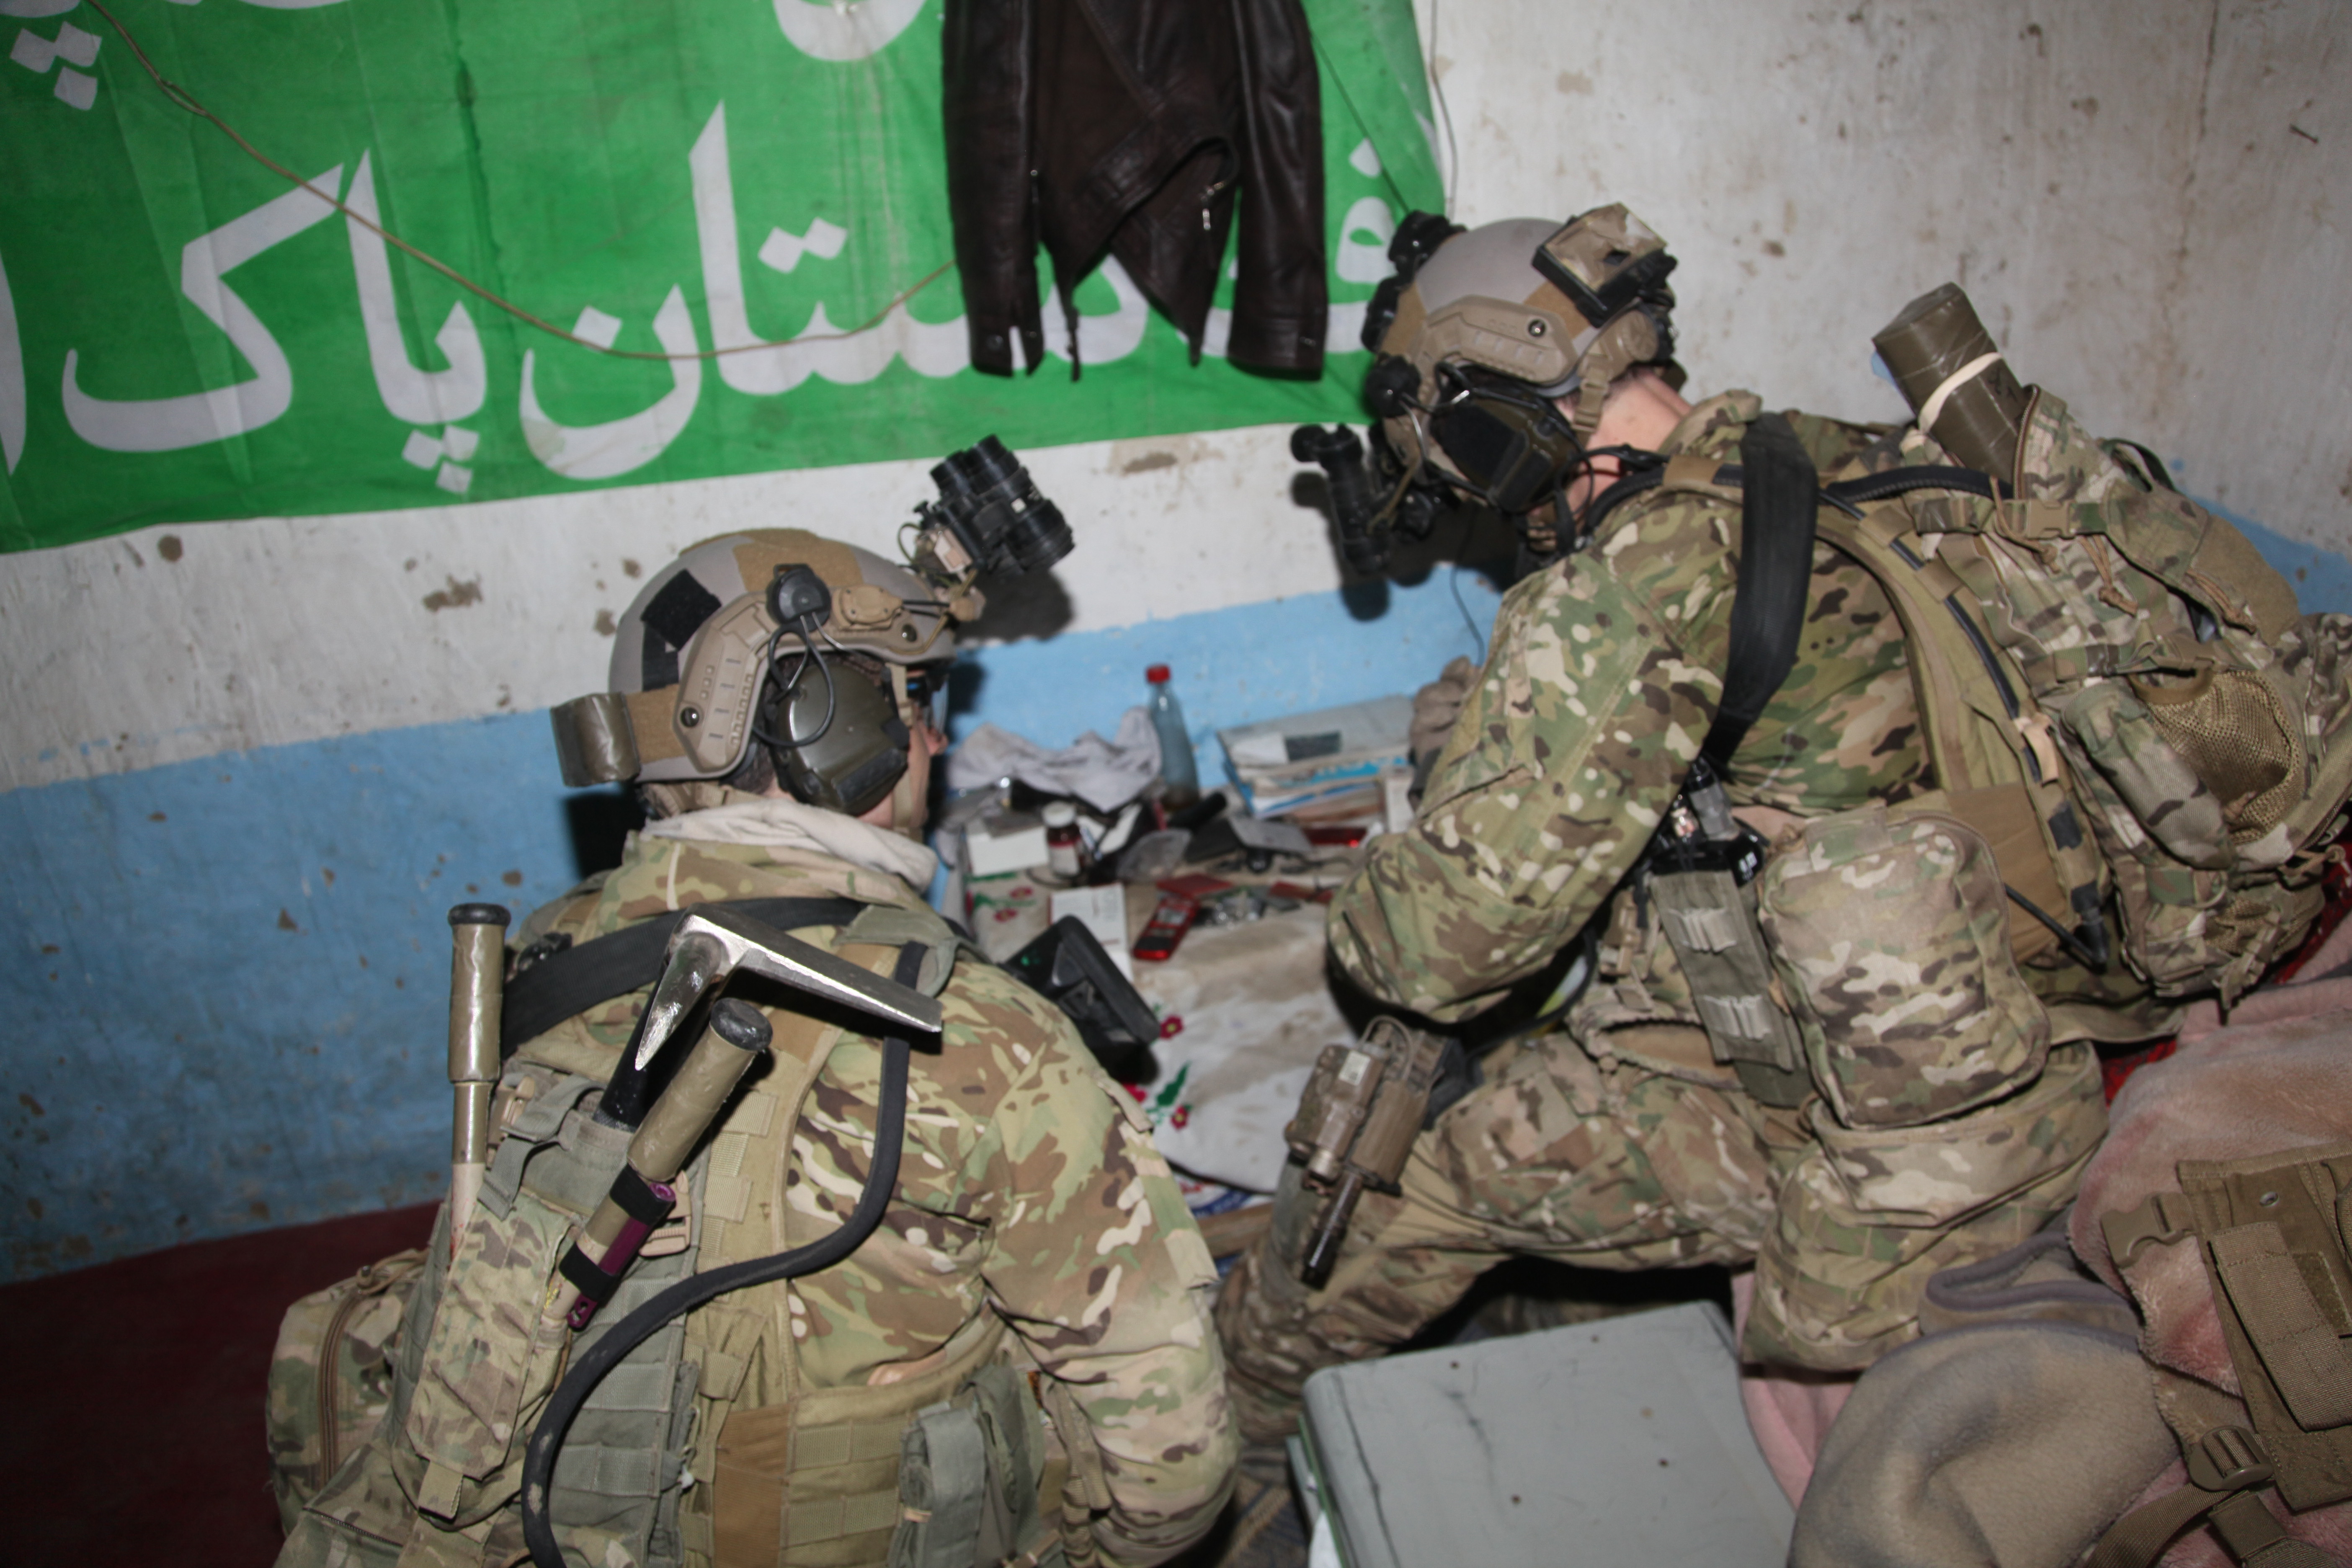 Lawmakers are adamant that funding for special operations forces not drop off as the U.S. looks deter war with China, Russia and others. (Spc. Ryan DeBooy/Army)